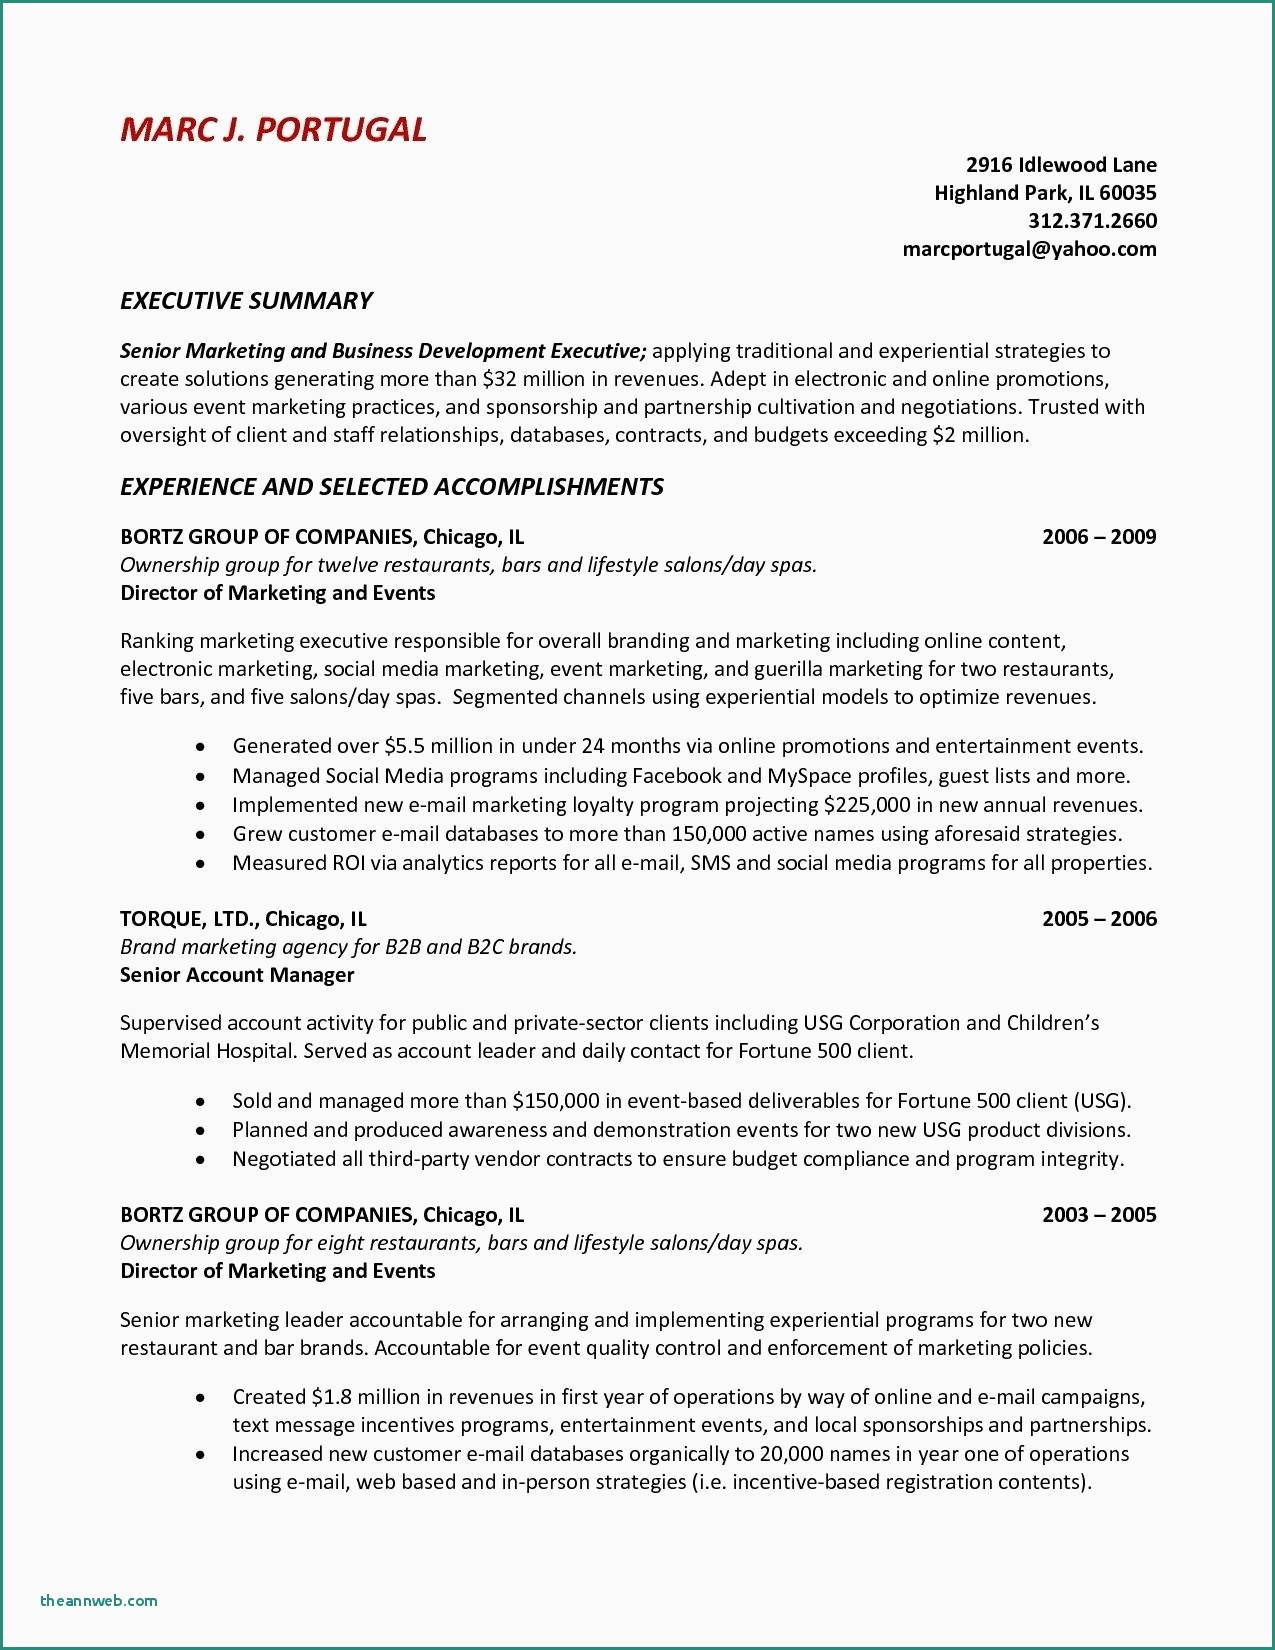 Good Objective For Resume Job Objective For Resume General Objectives For Resume Awesome Good Objective Resume Of Job Objective For Resume good objective for resume|wikiresume.com